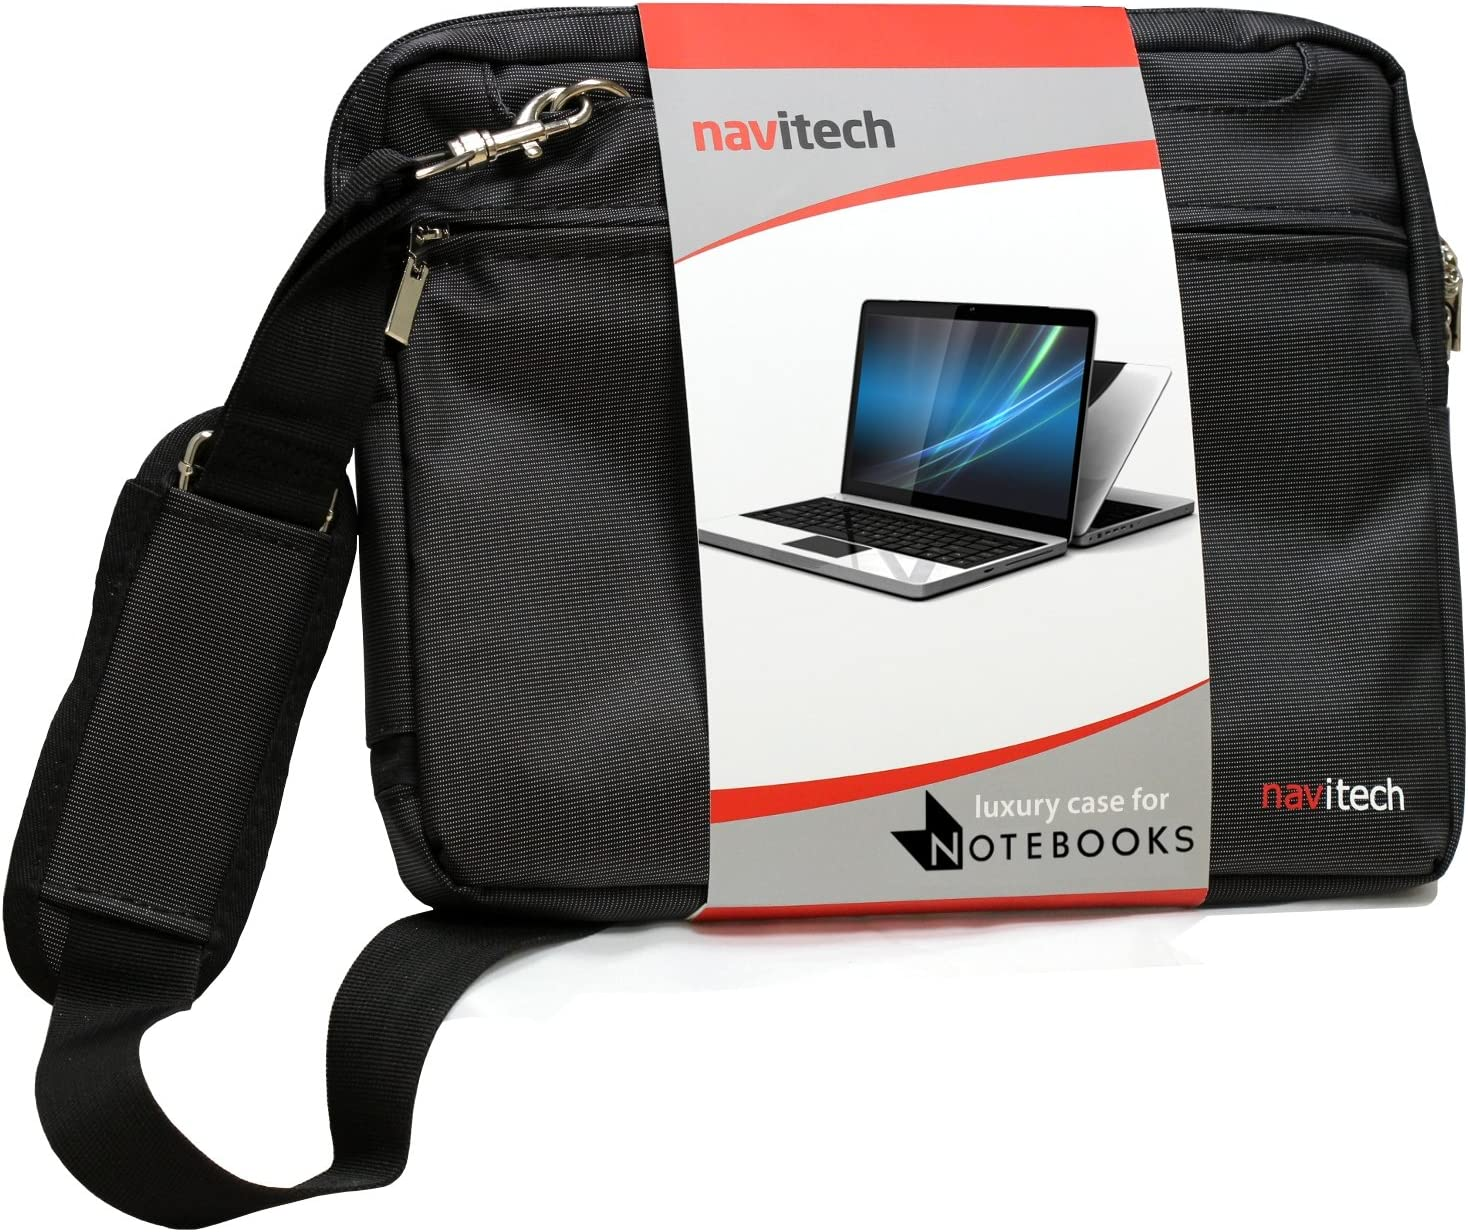 Navitech Black 11.6-Inch Laptop/Notebook/Ultrabook Case/Bag Compatible with The Acer C720 Chromebook/Acer C7 Chromebook/Samsung Chromebook/HP Chromebook 11